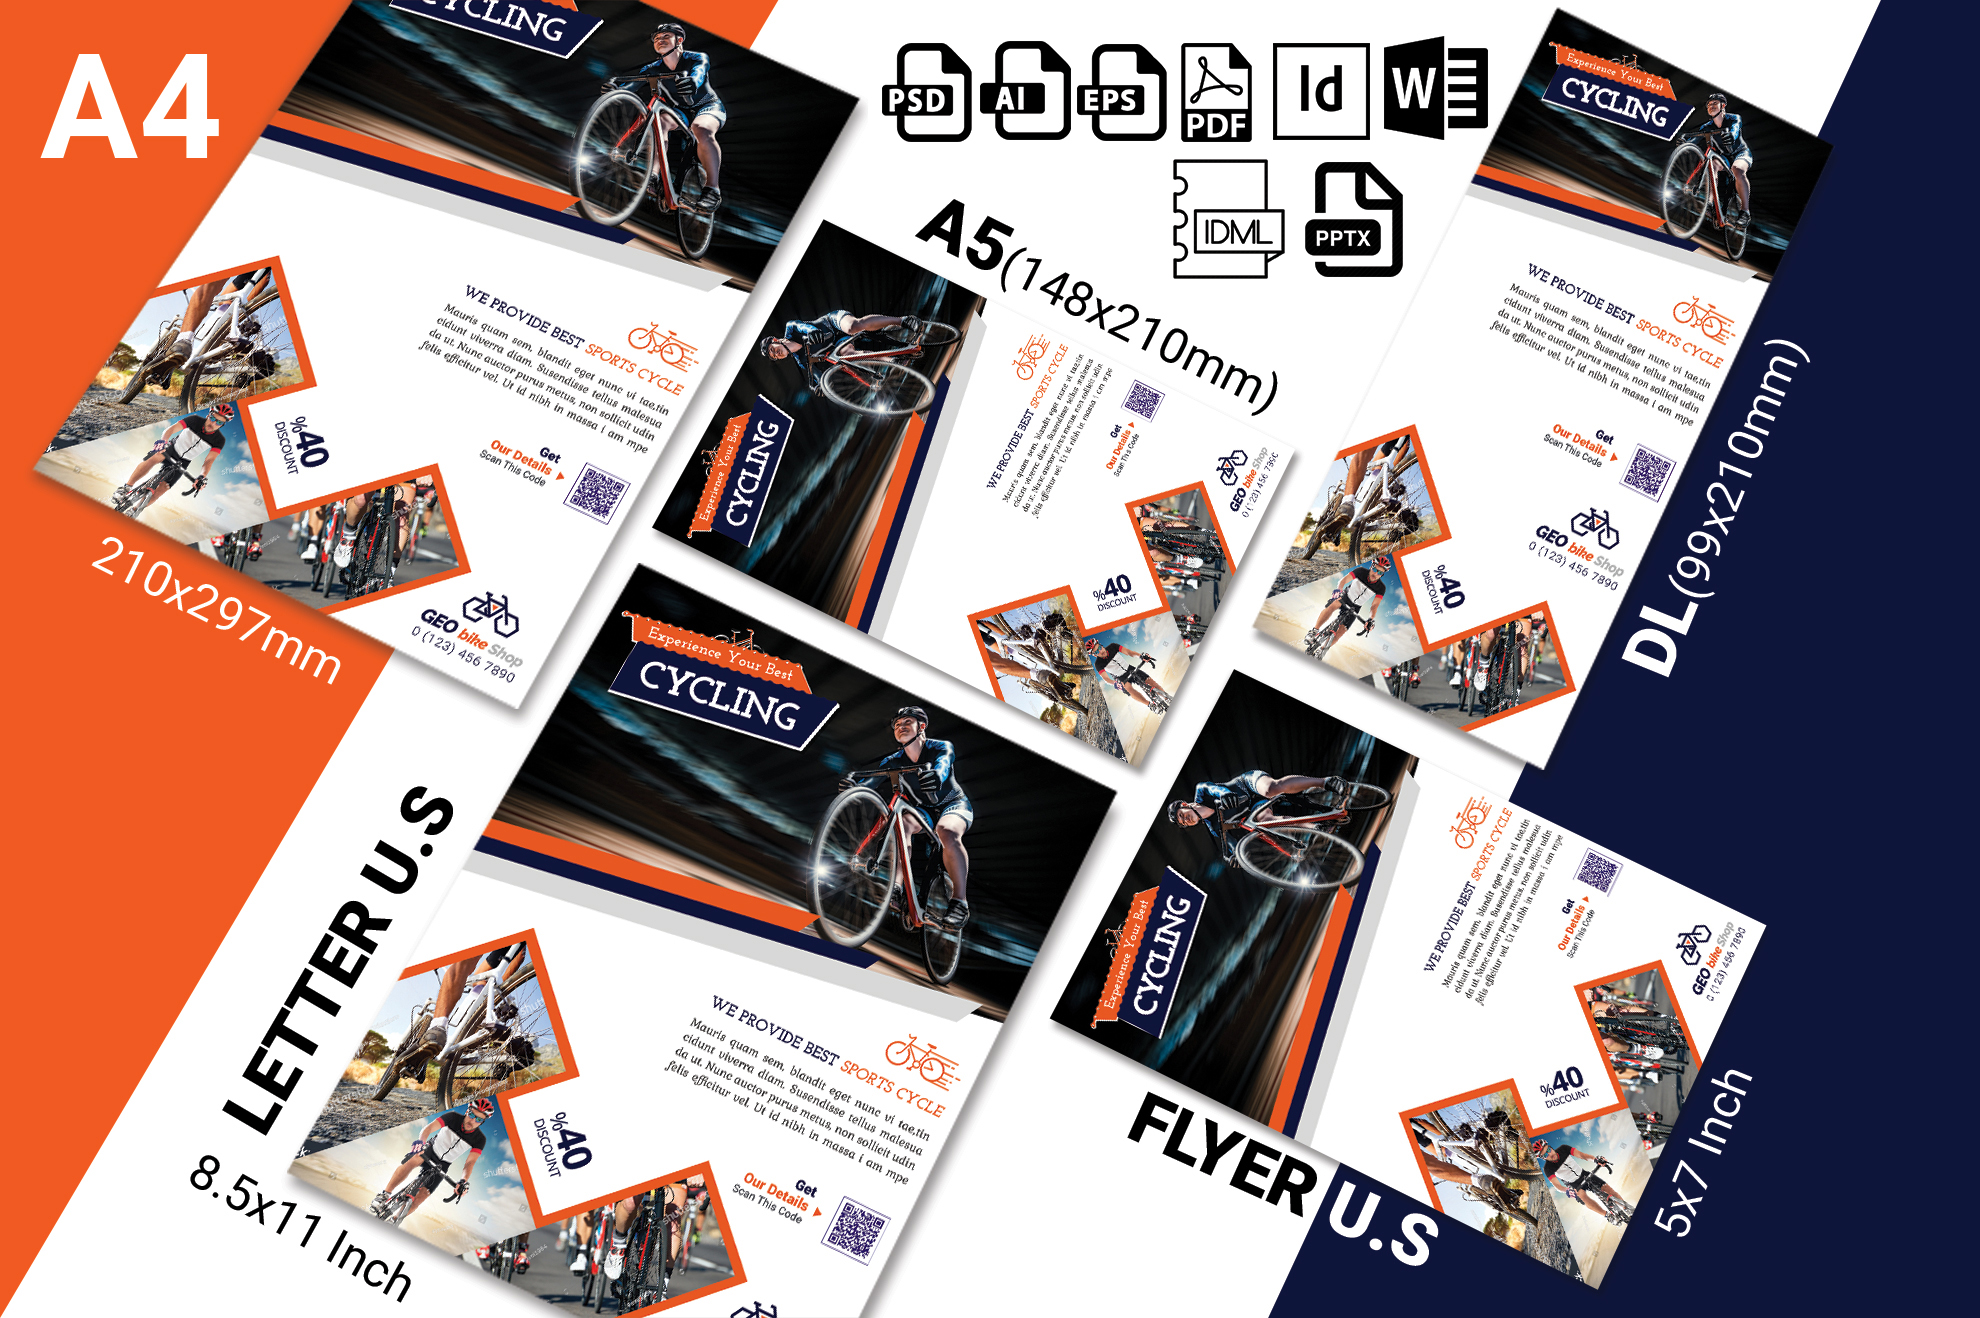 Cycle Shop Flyer Template Vol-01 example image 2